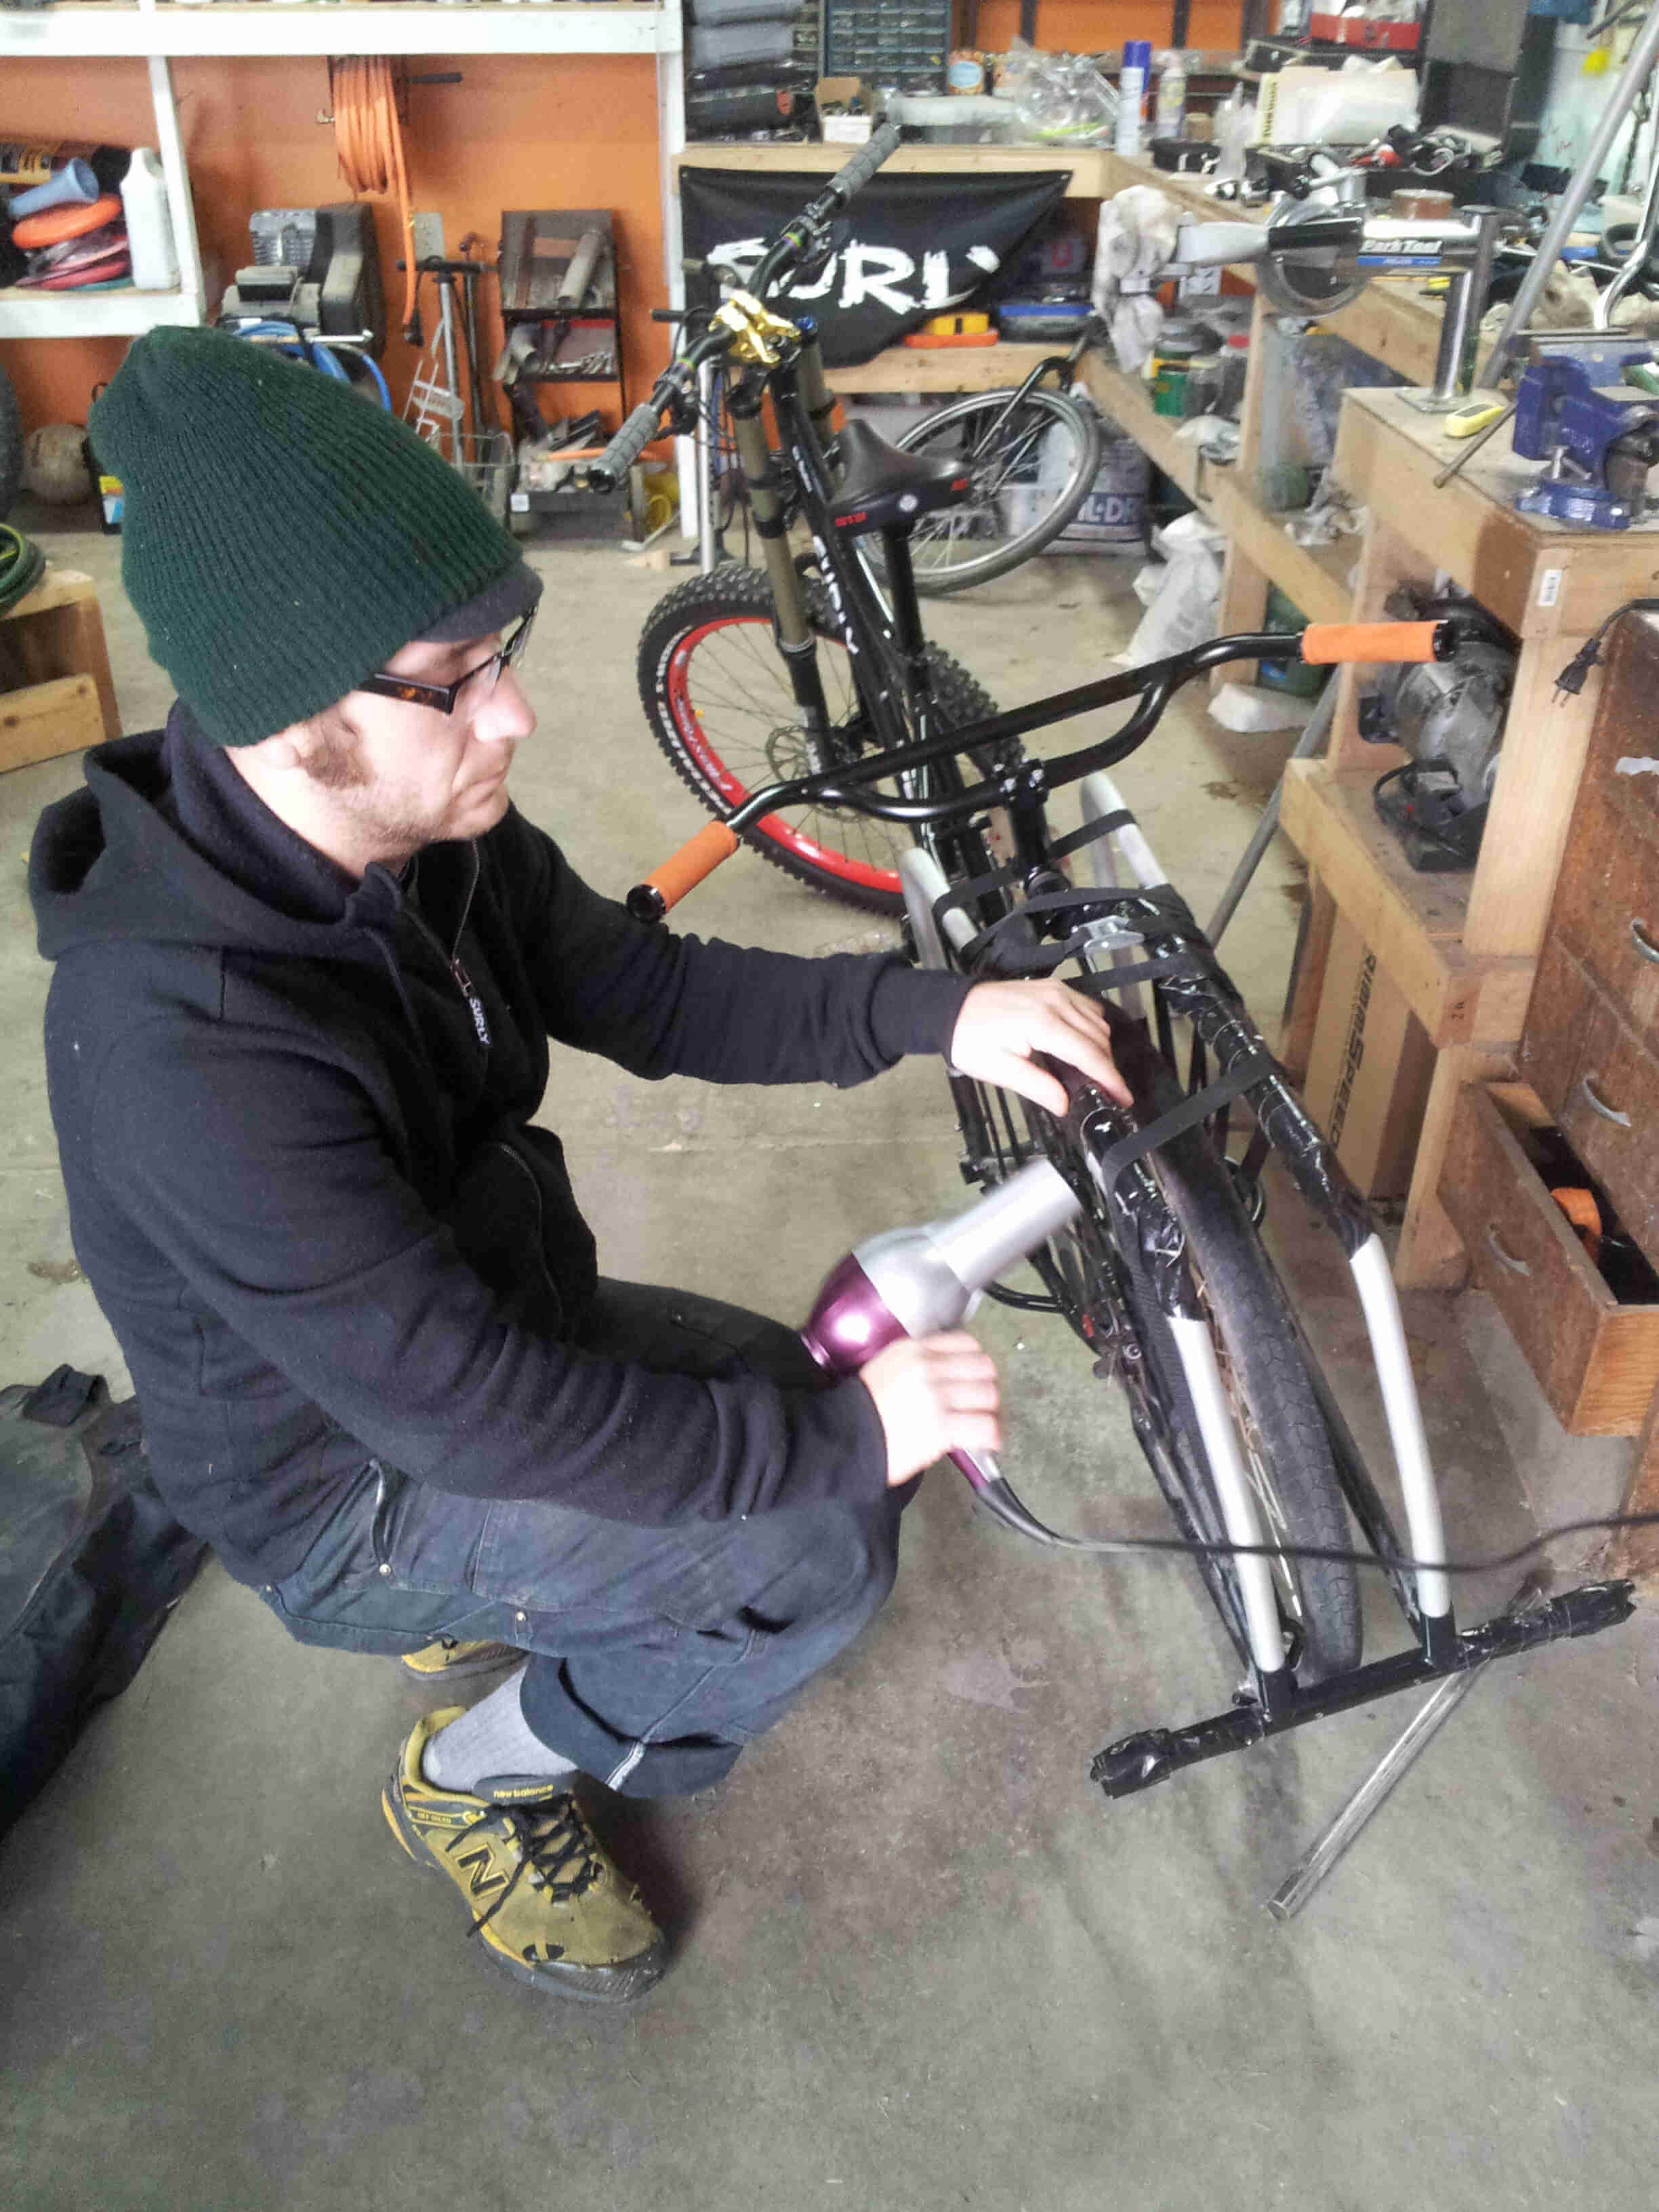 Rear view of a black Surly Big Dummy bike, with a person squatting down on the left side, inside of a workshop